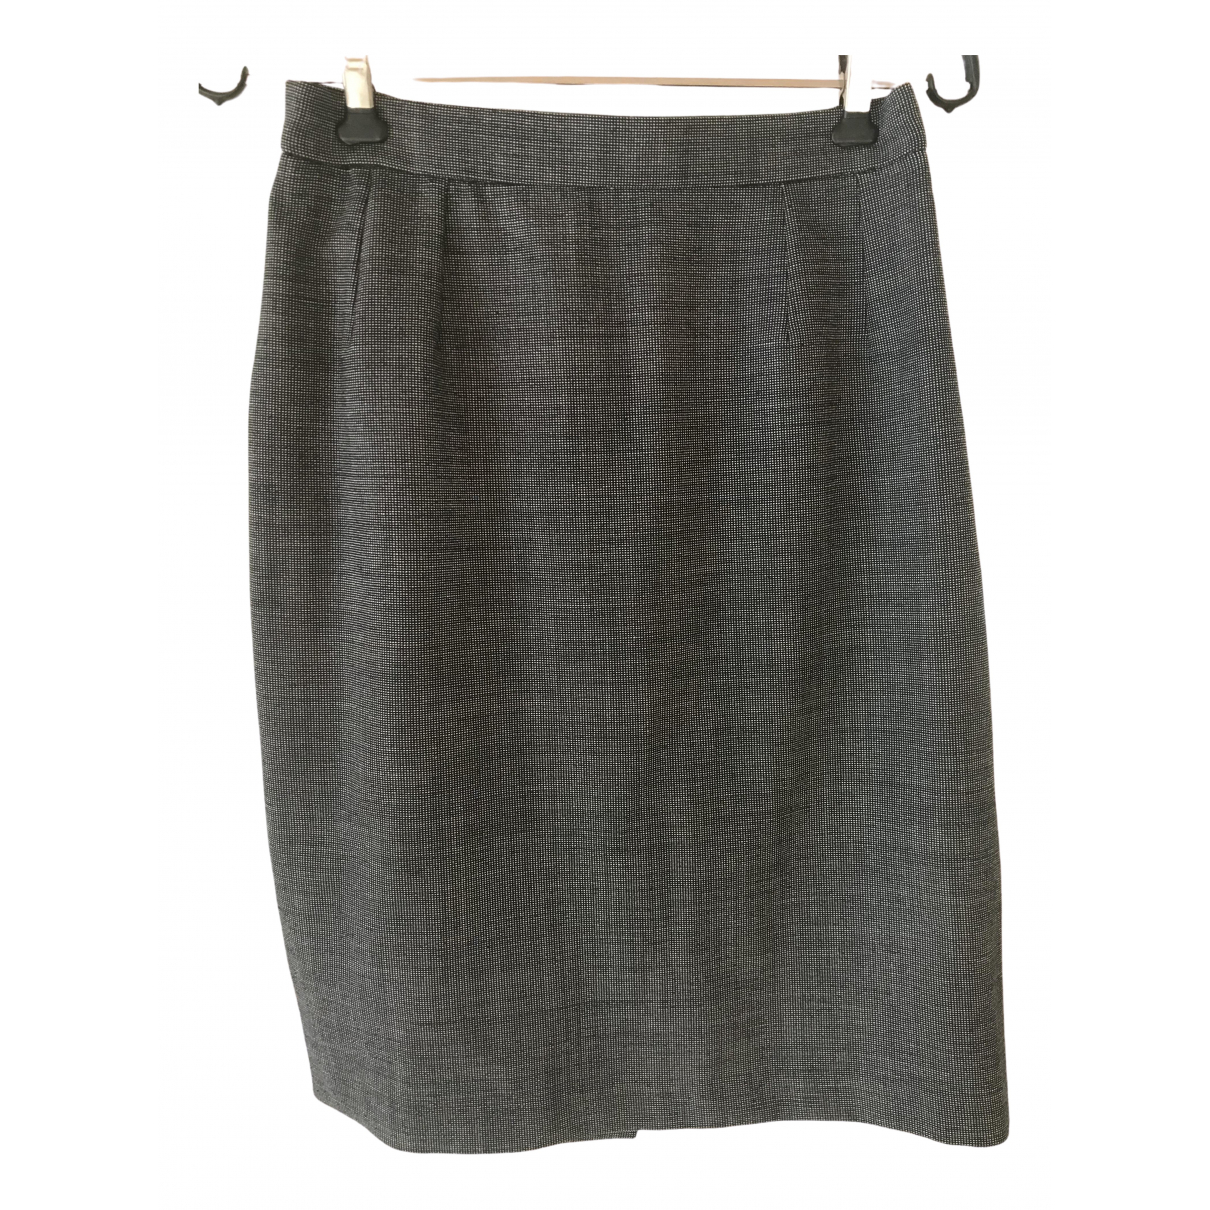 Chantal Thomass \N Anthracite Wool skirt for Women 38 FR